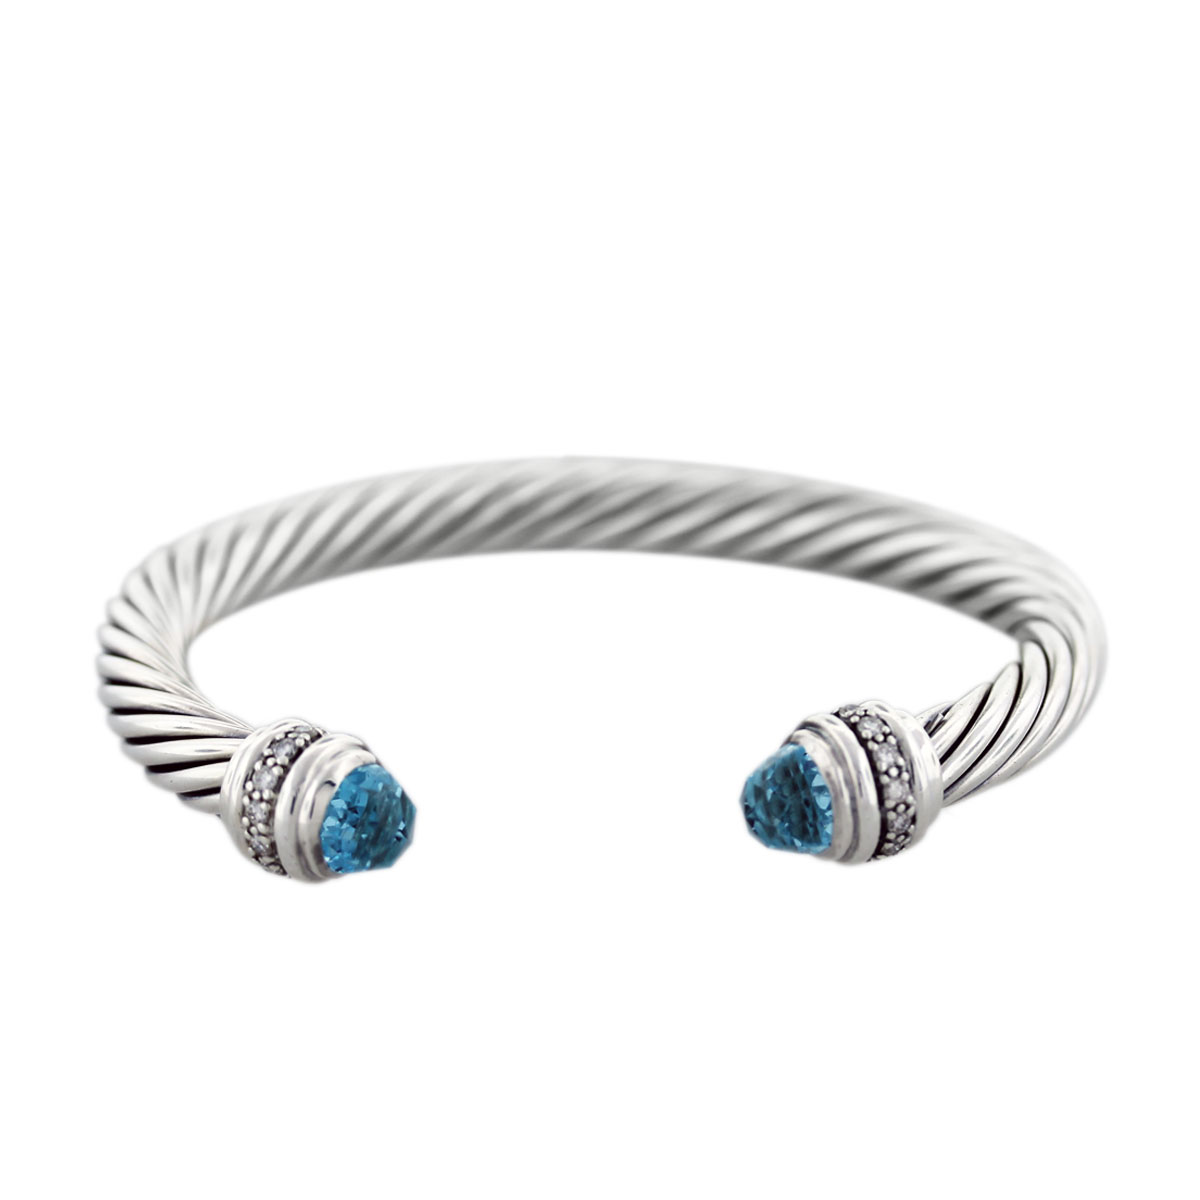 david yurman 7mm blue topaz and diamond cable bracelet ForDavid Yurman Like Bracelets